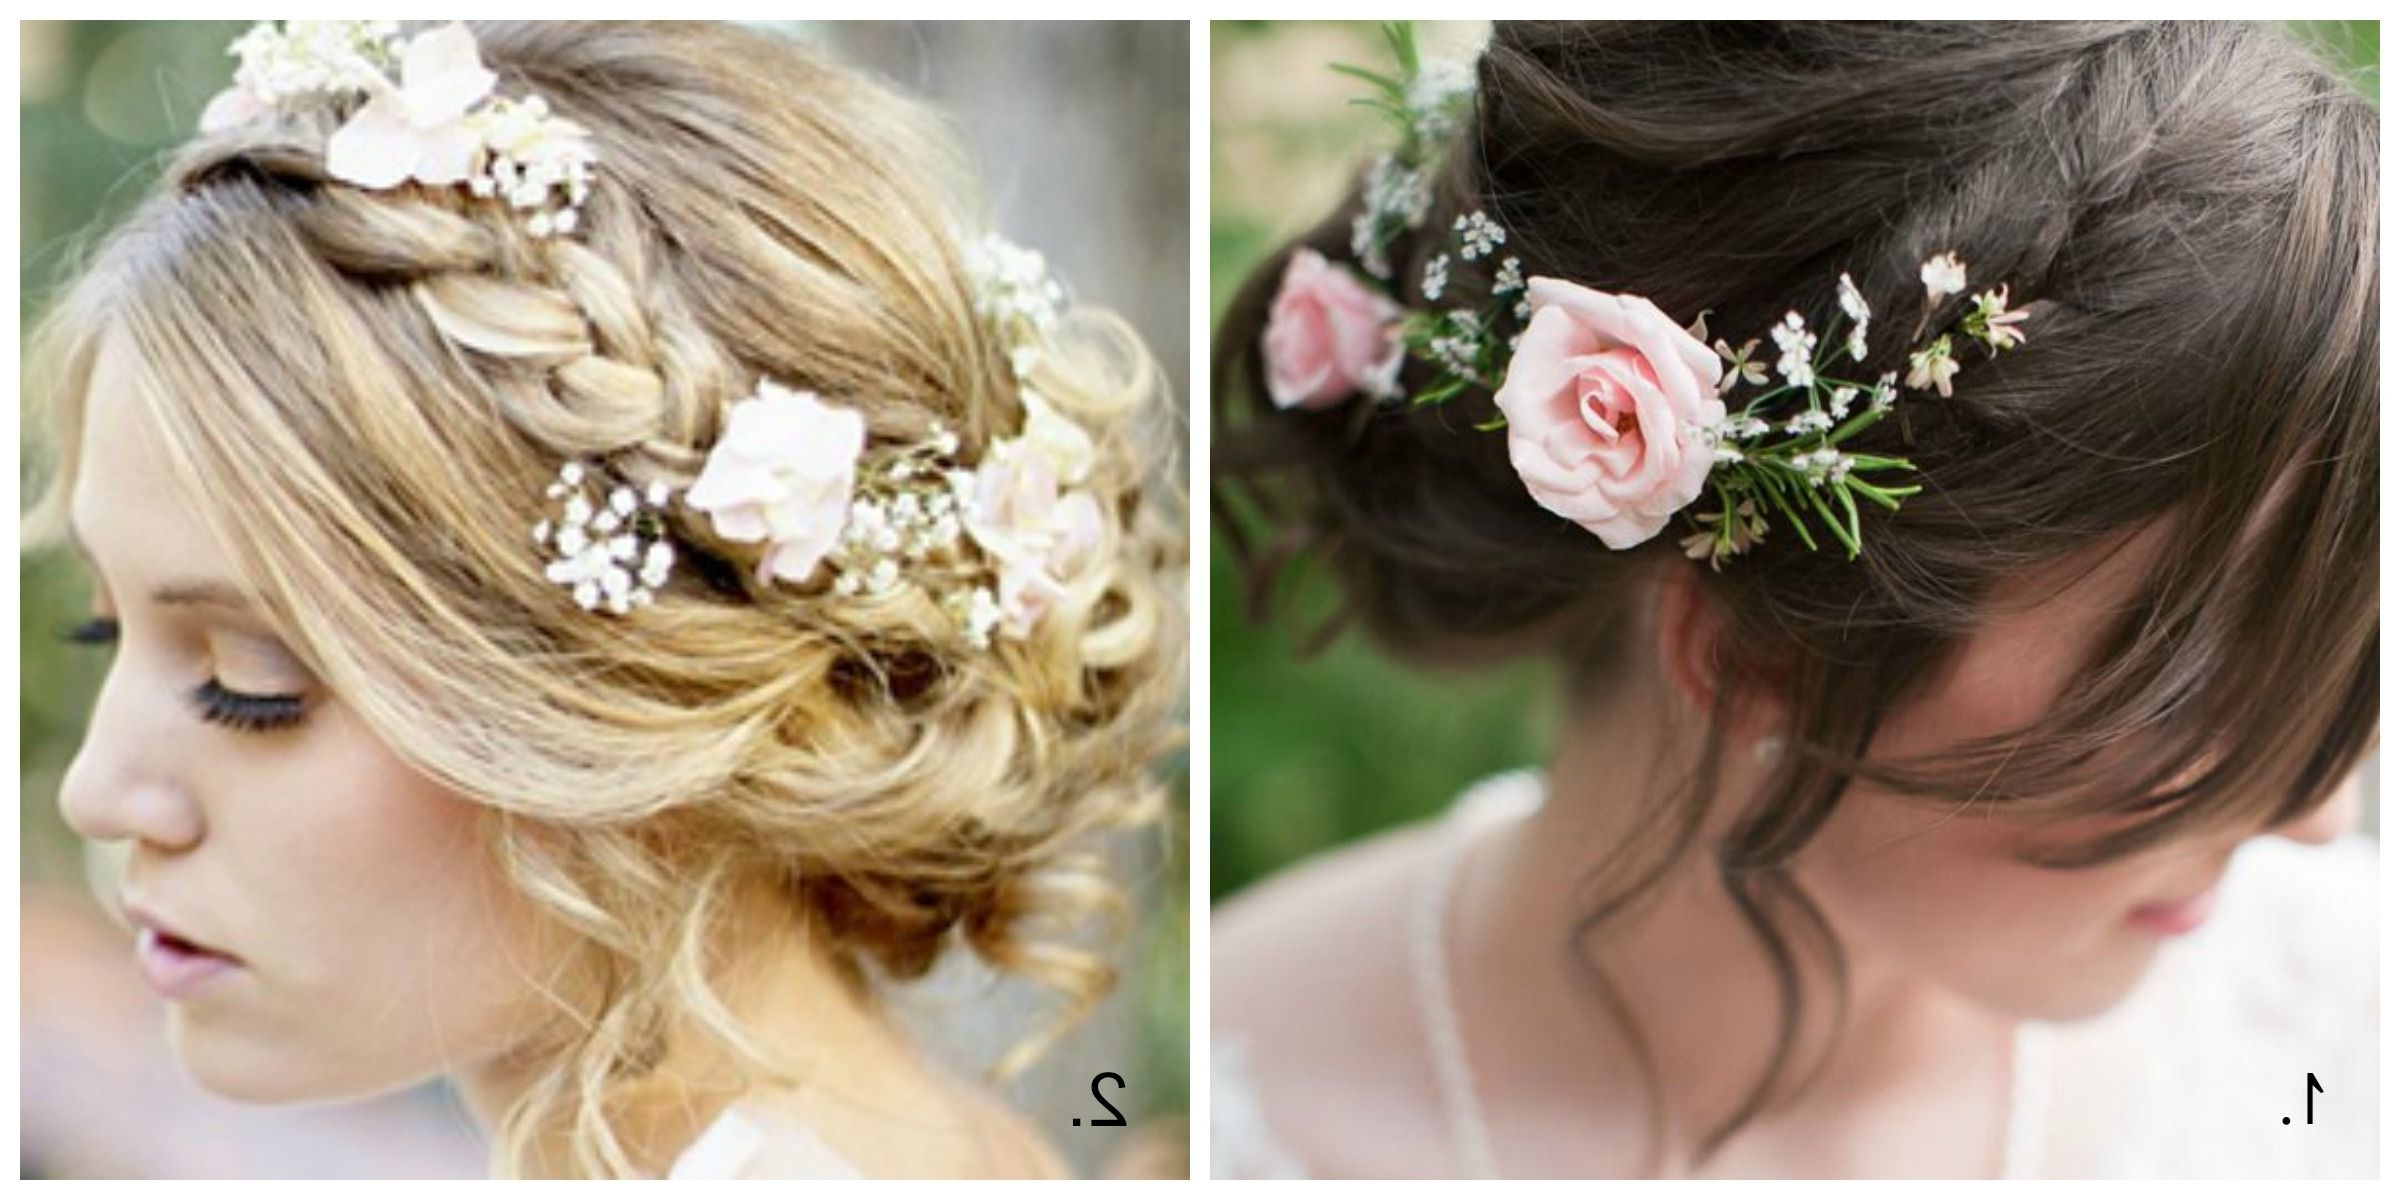 Hairstyles Intended For Trendy Edmonton Wedding Hairstyles (View 8 of 15)